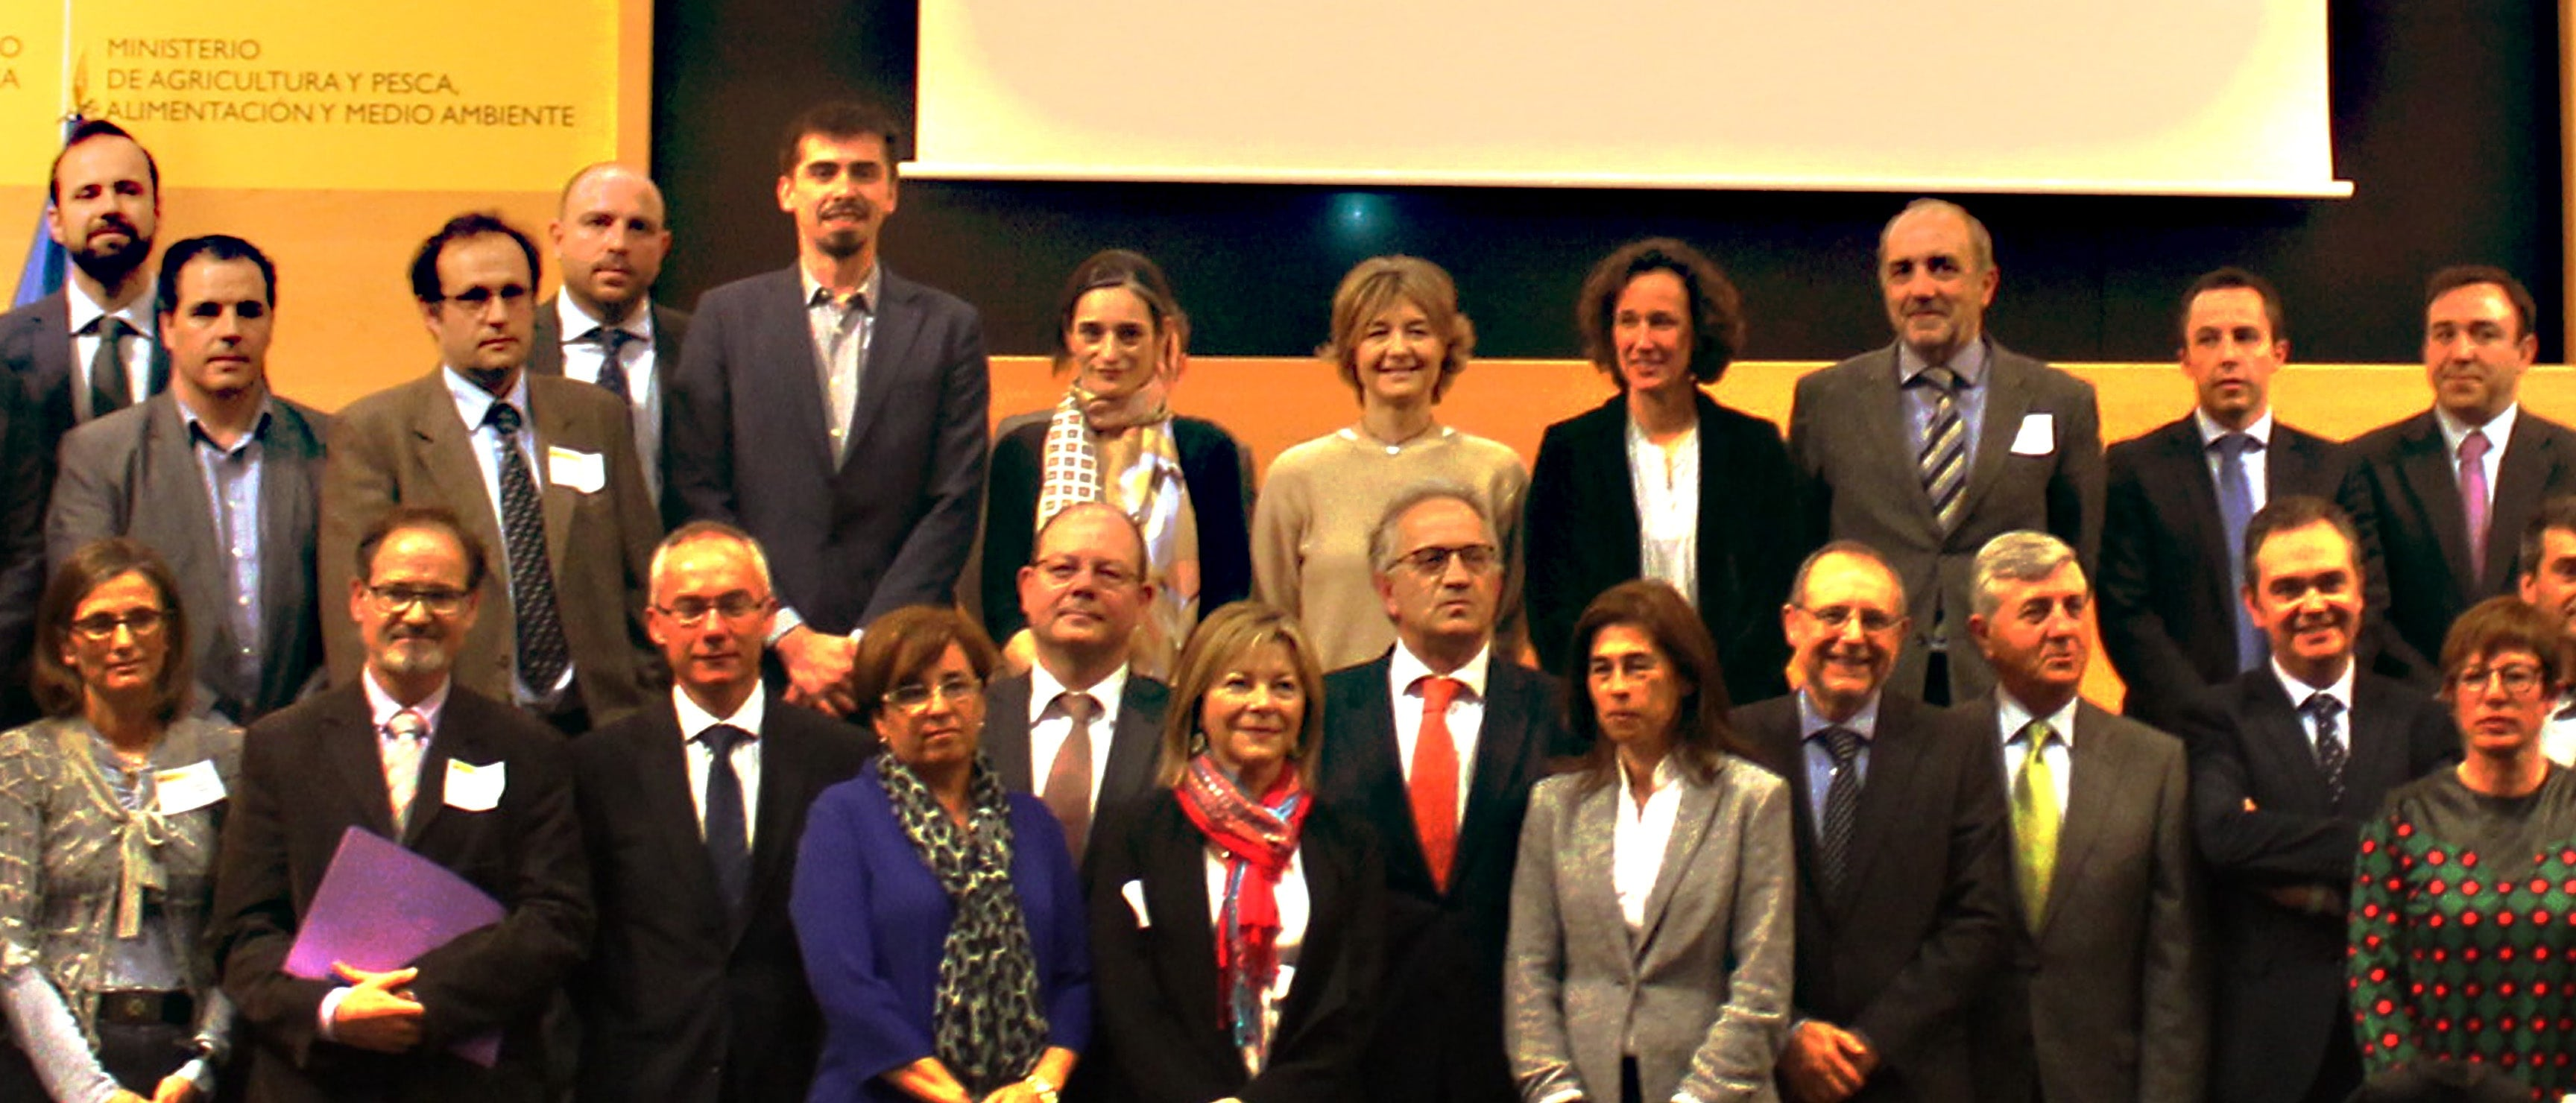 Proposals Projects Climate 2016 in Madrid (March 2017)